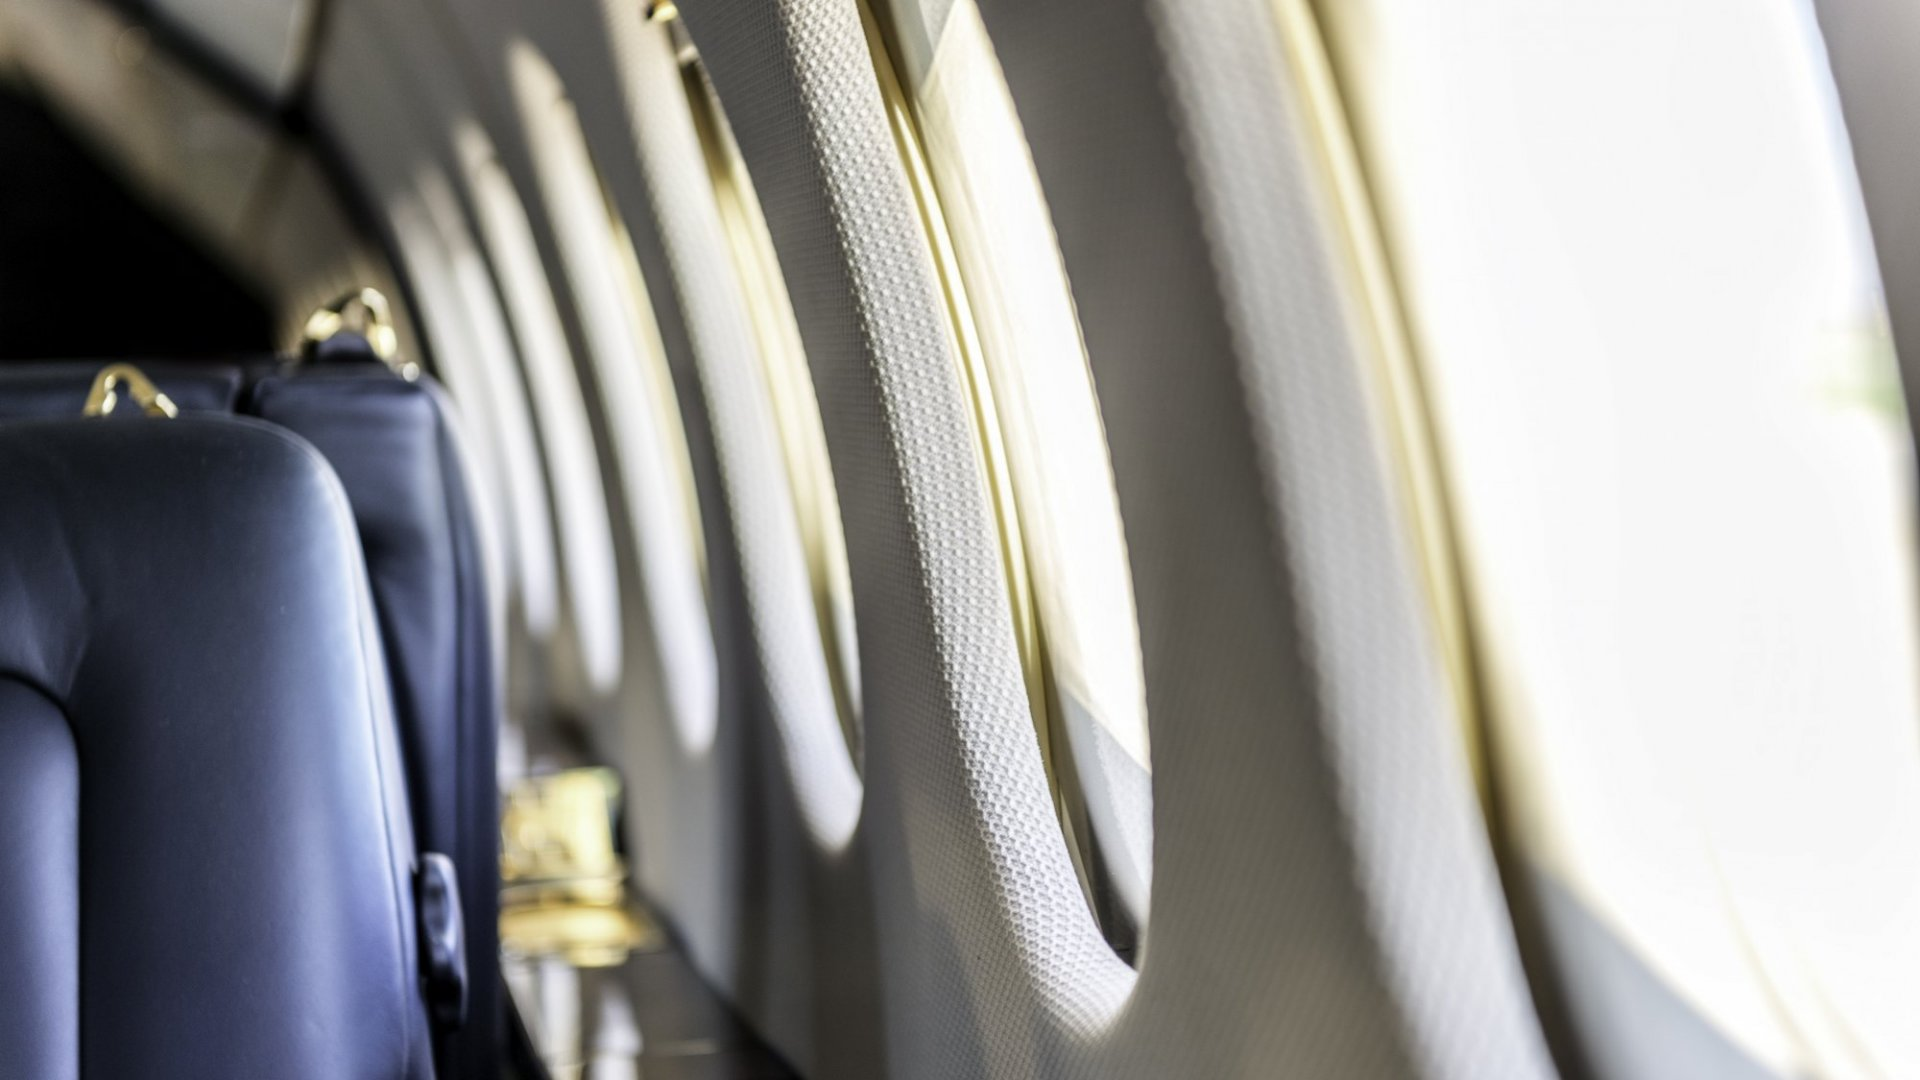 4 Realistic (and Easy) Ways to Get an Upgrade on Your Business Flight